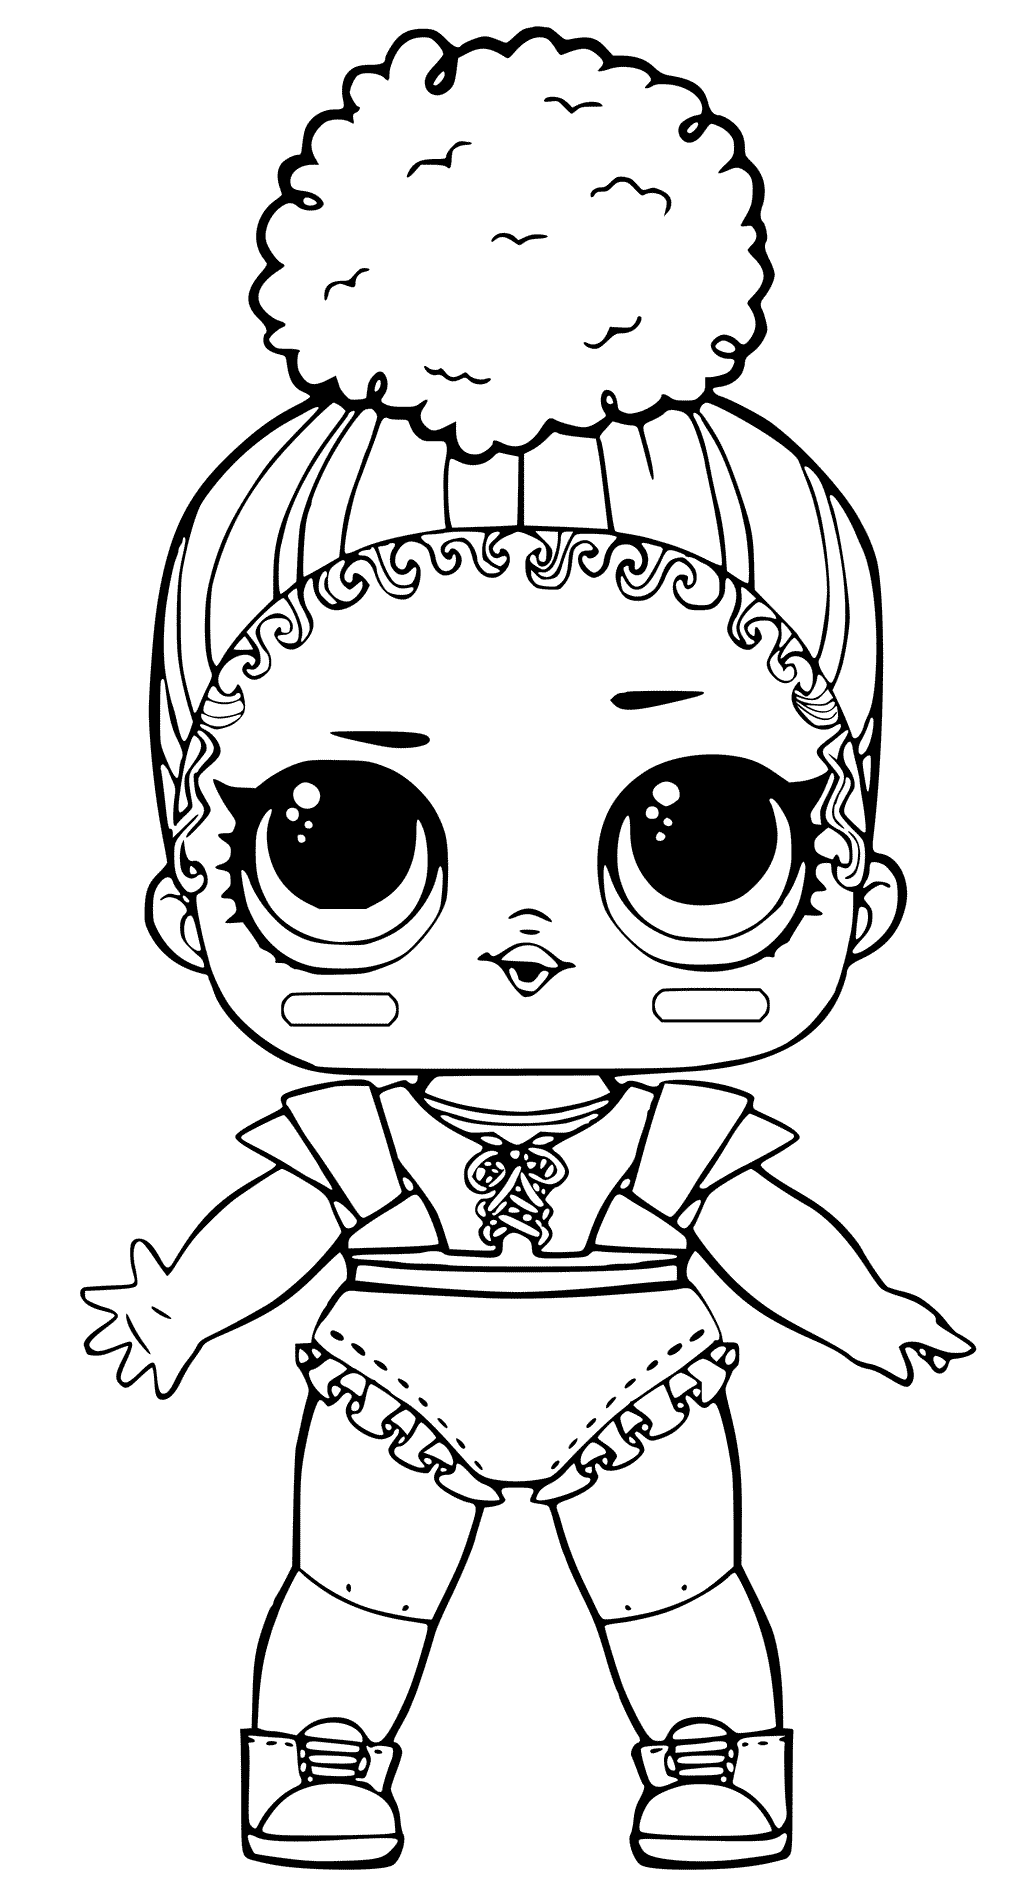 Lol Doll Coloring Pages Coloring Rocks Unicorn Coloring Pages Lol Dolls Baby Coloring Pages